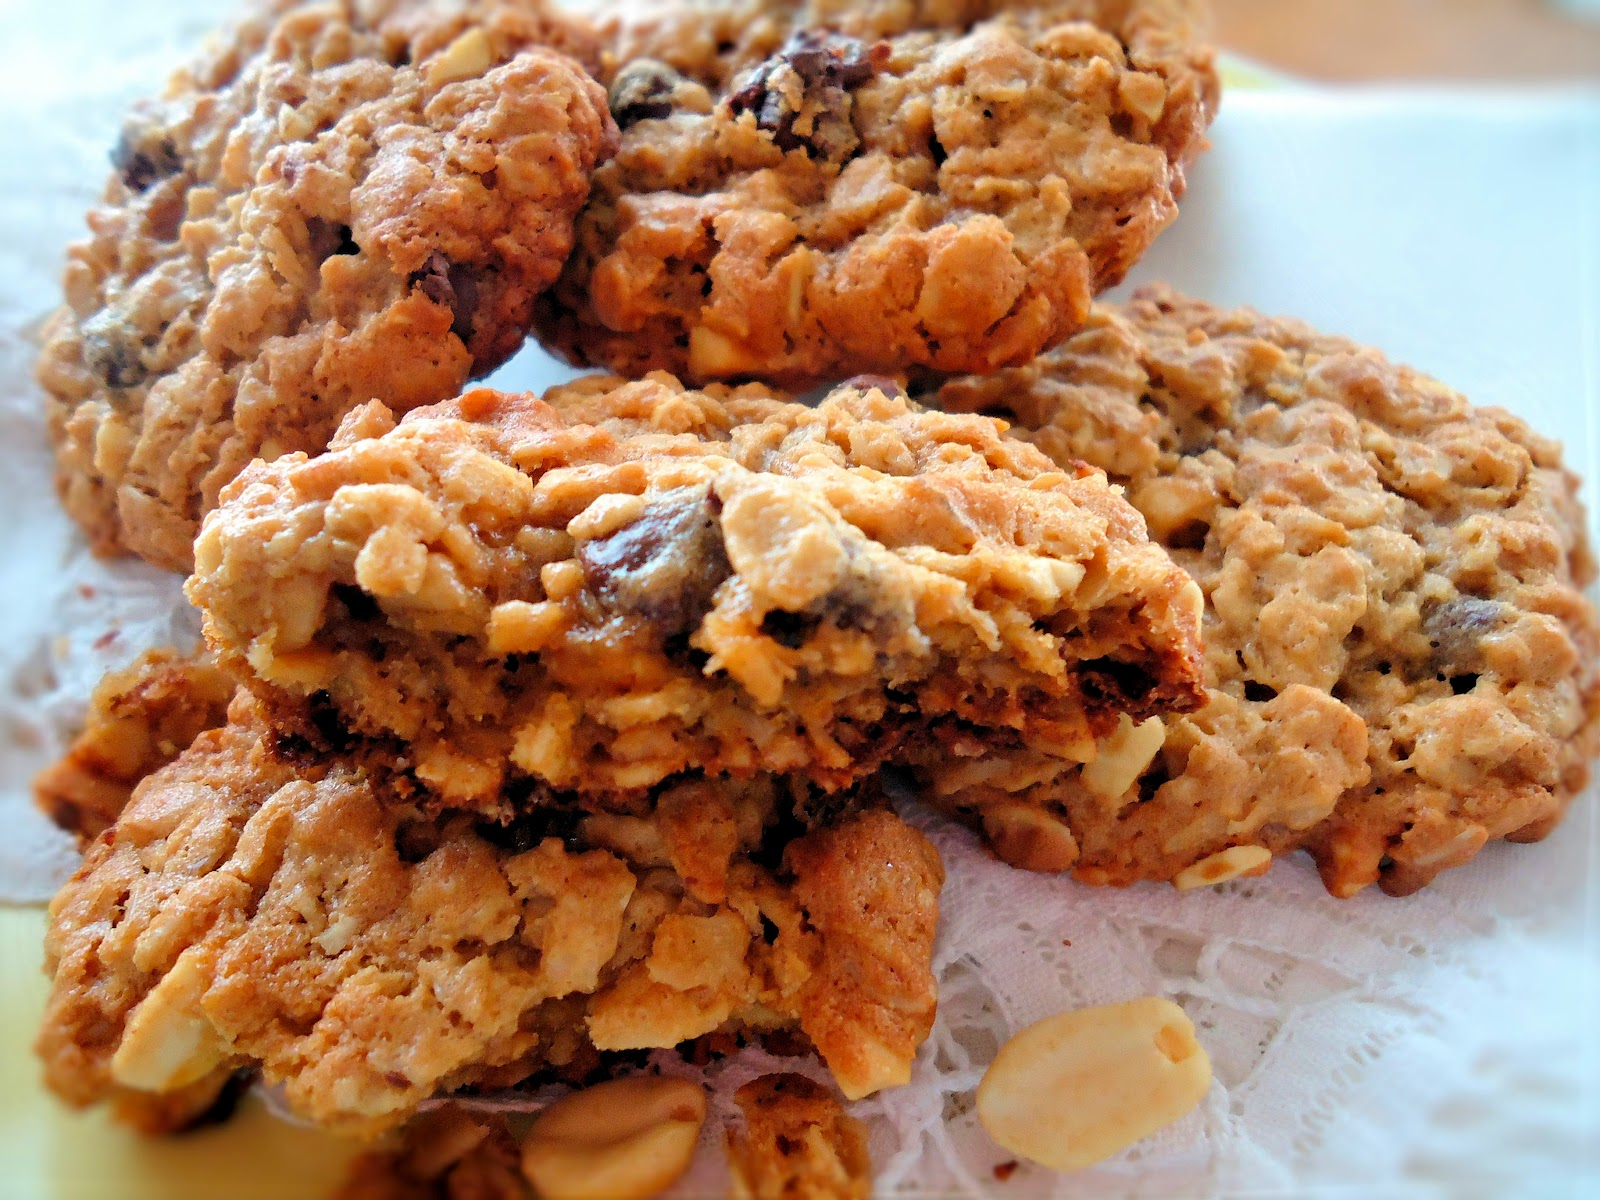 ... Eats: Gluten Free Peanut Butter Oatmeal Cookies with Chocolate Chips